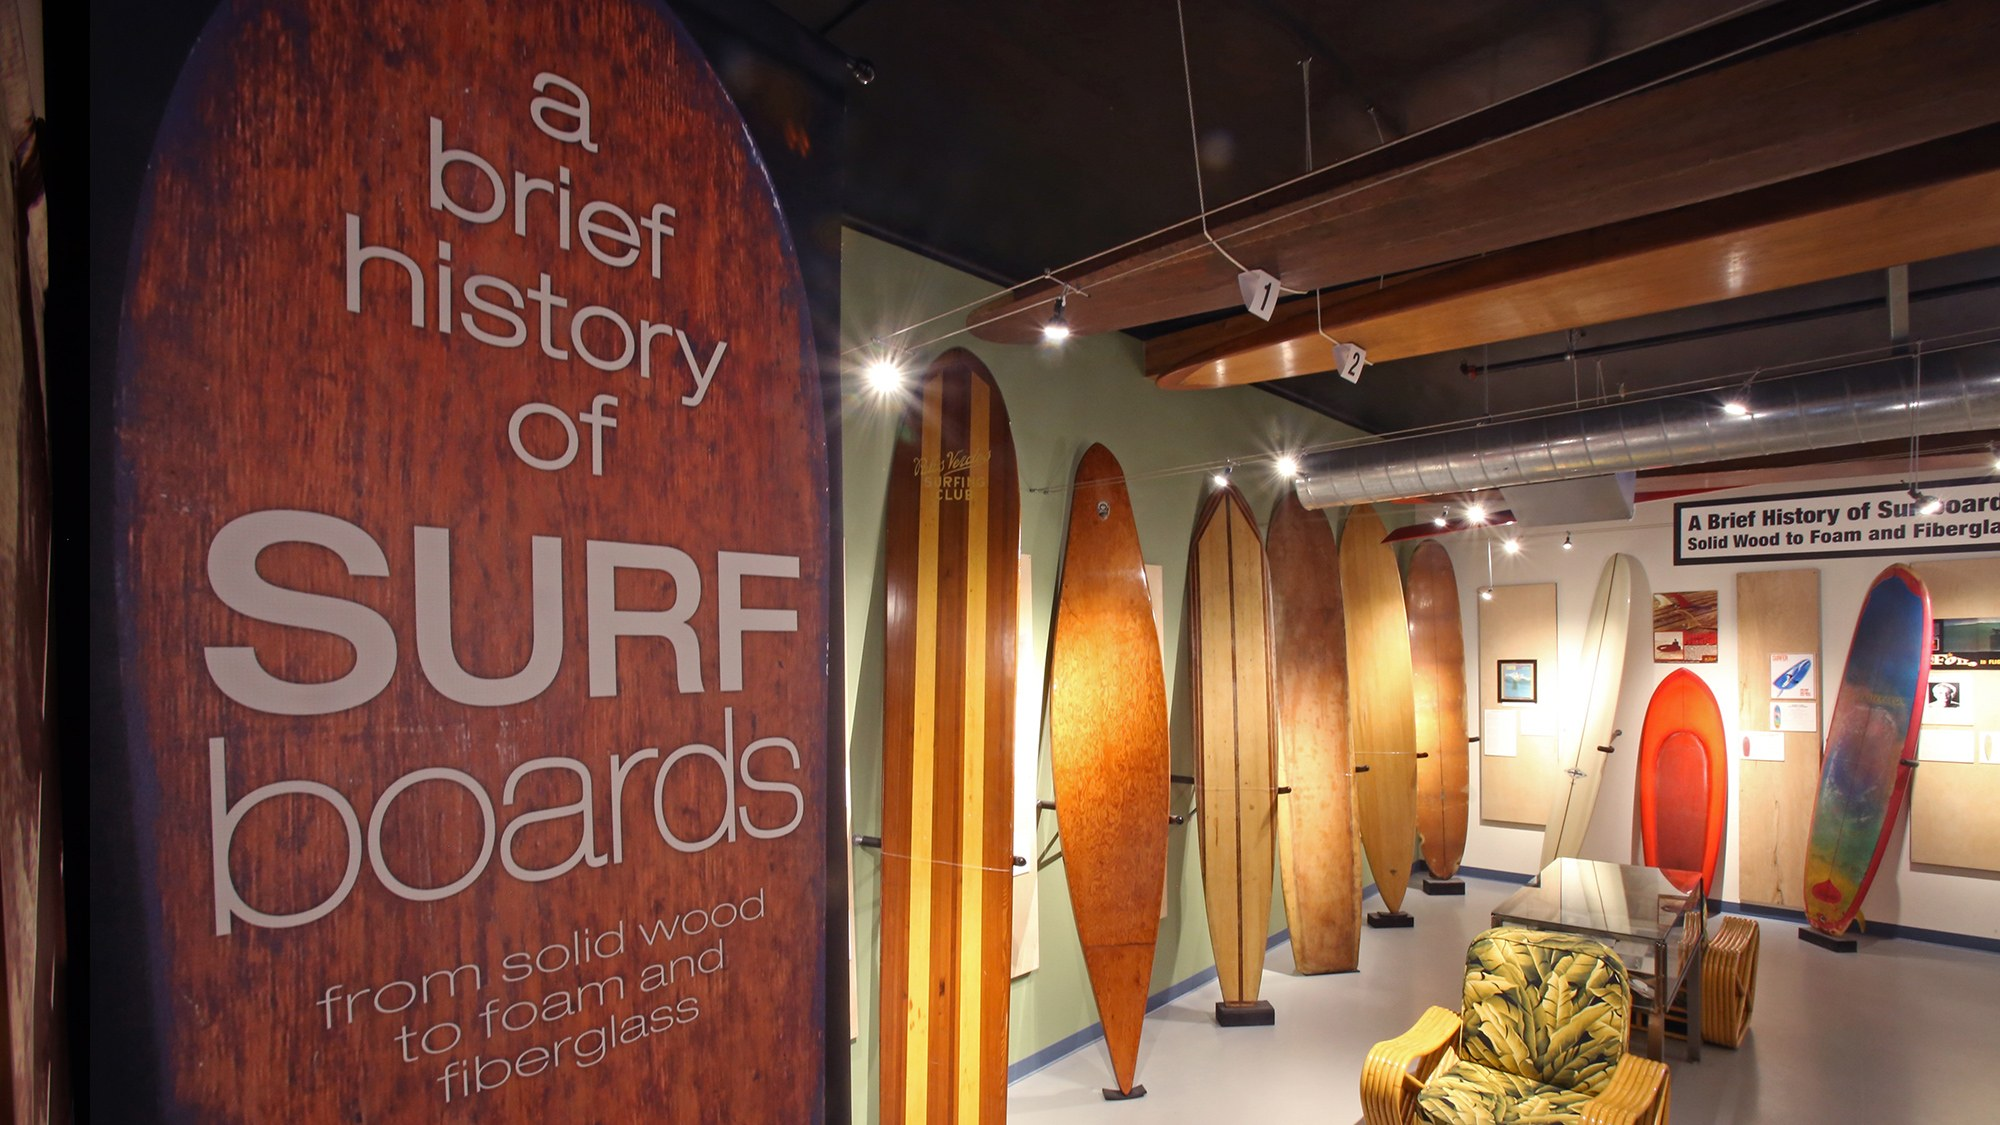 A Brief History of Surfboards: Wood, Foam to Fiberglass